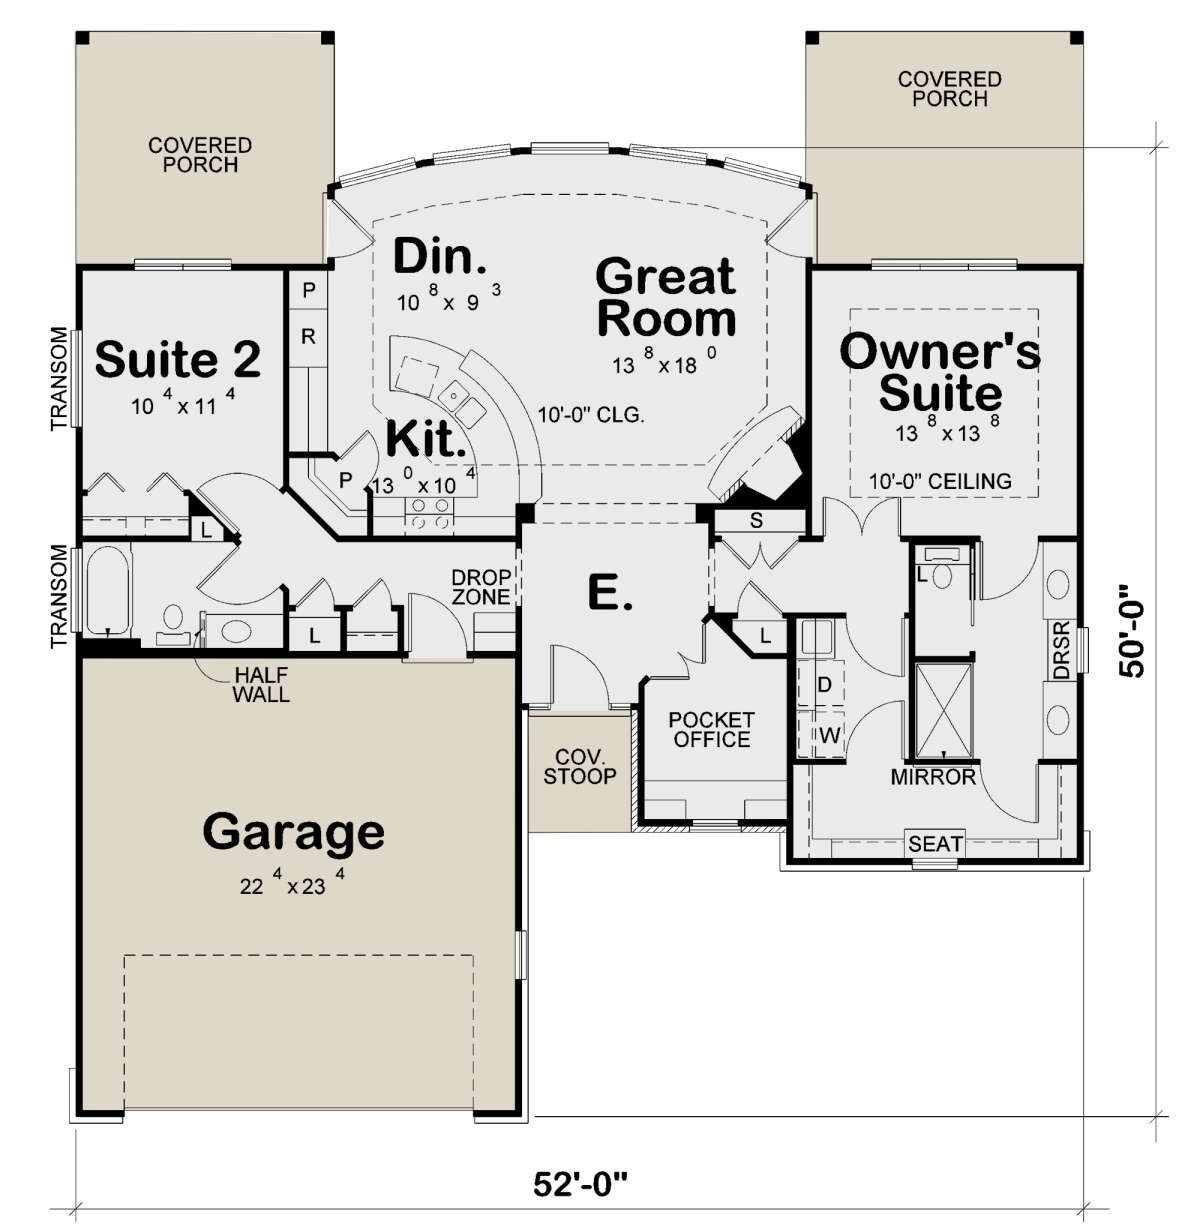 House Plan 402 01637 Ranch Plan 1 436 Square Feet 2 Bedrooms 2 Bathrooms In 2021 Best House Plans Open House Plans Bedroom House Plans